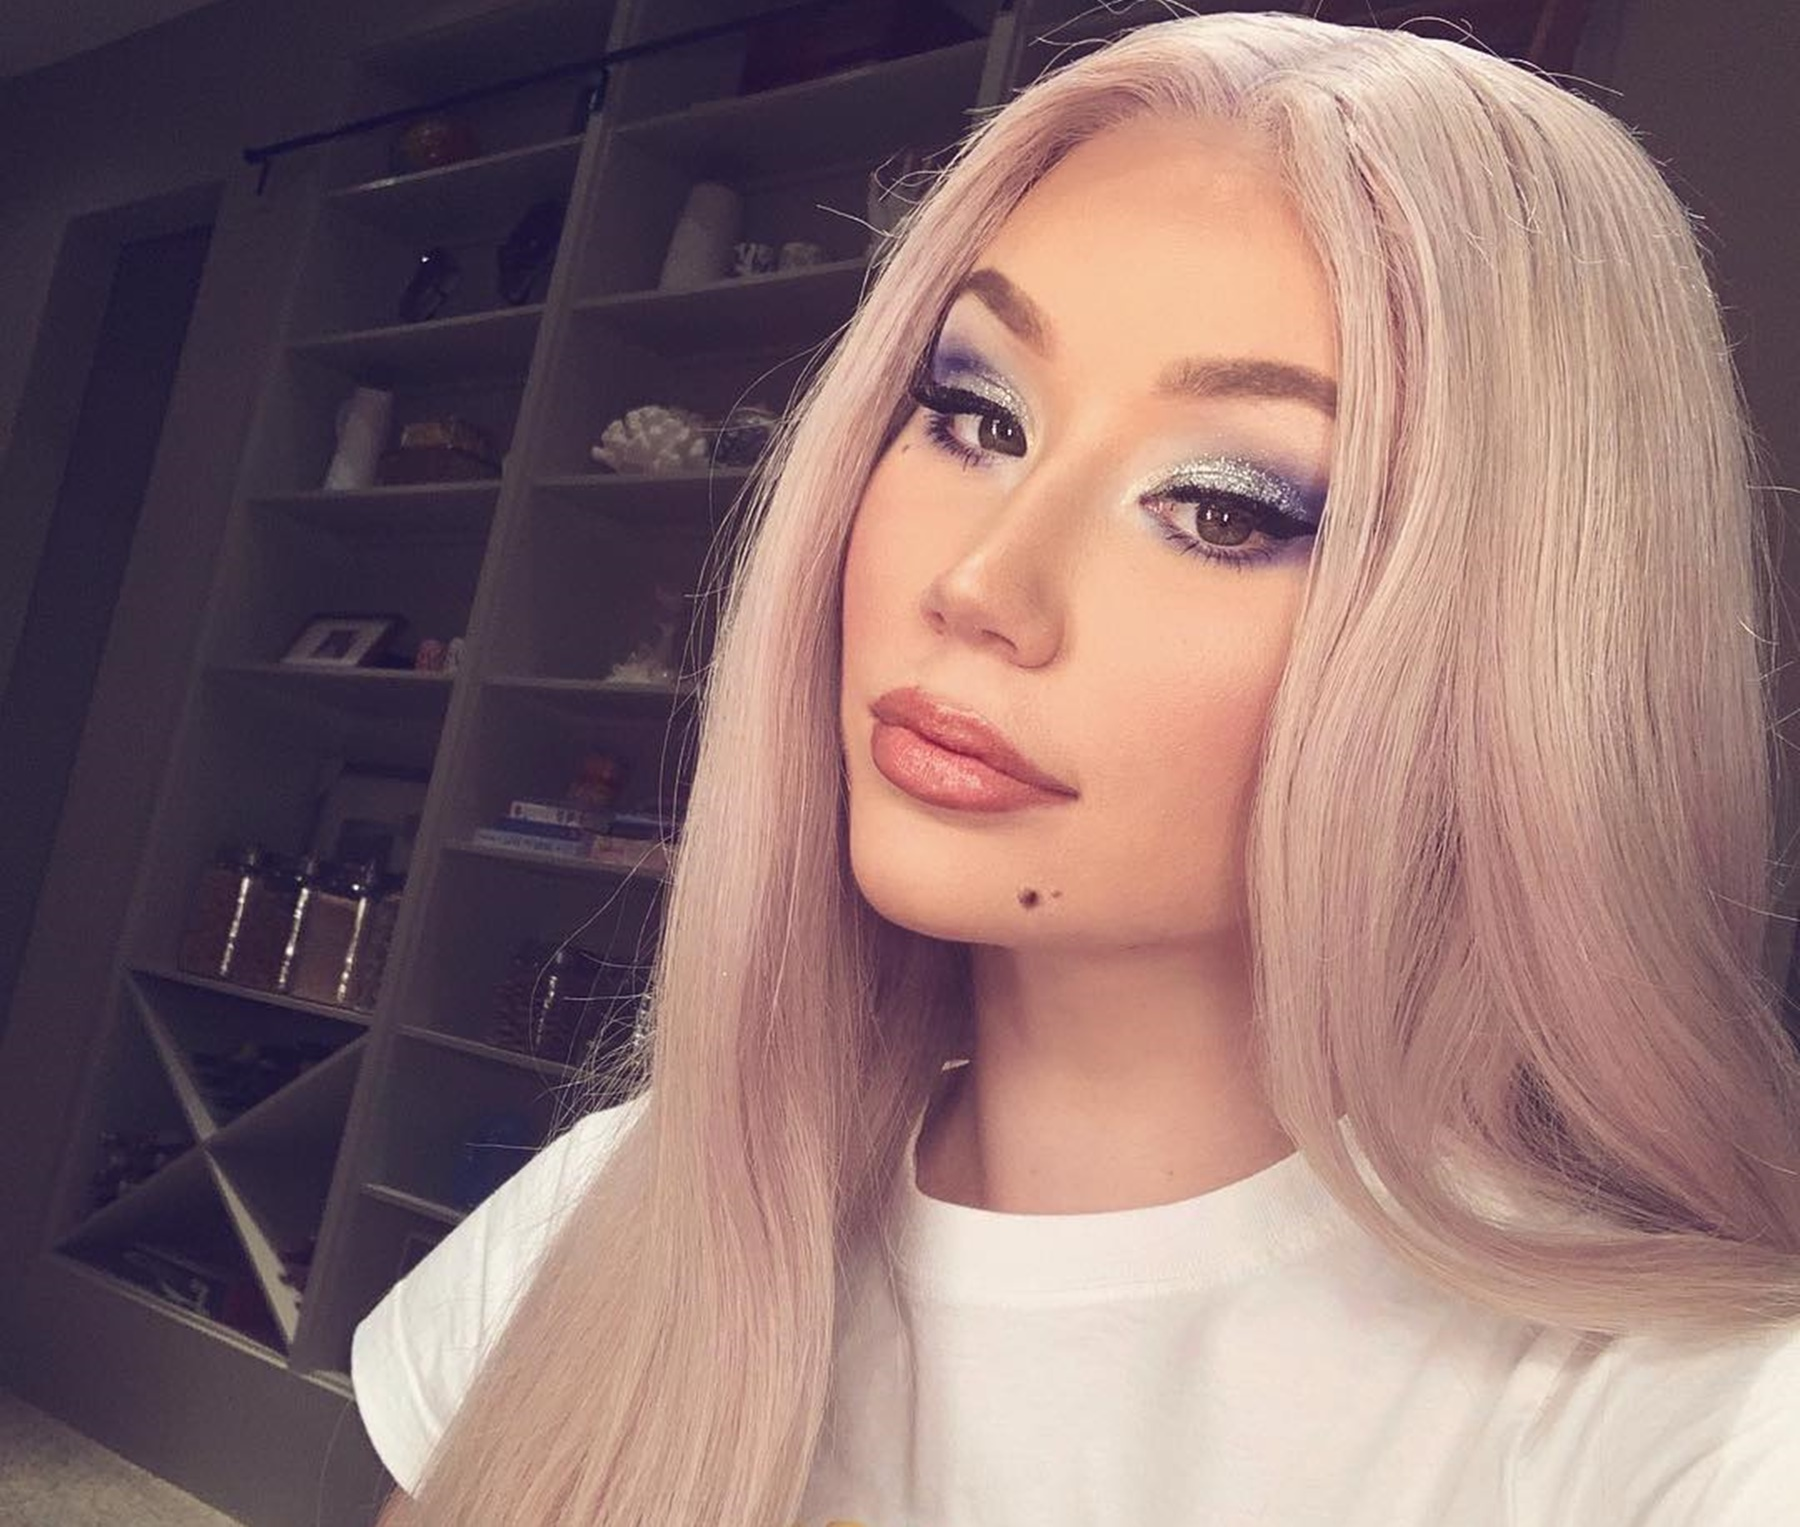 iggy-azalea-is-in-bed-with-her-sugar-daddy-pictures-have-fans-mocking-her-boyfriend-playboi-carti